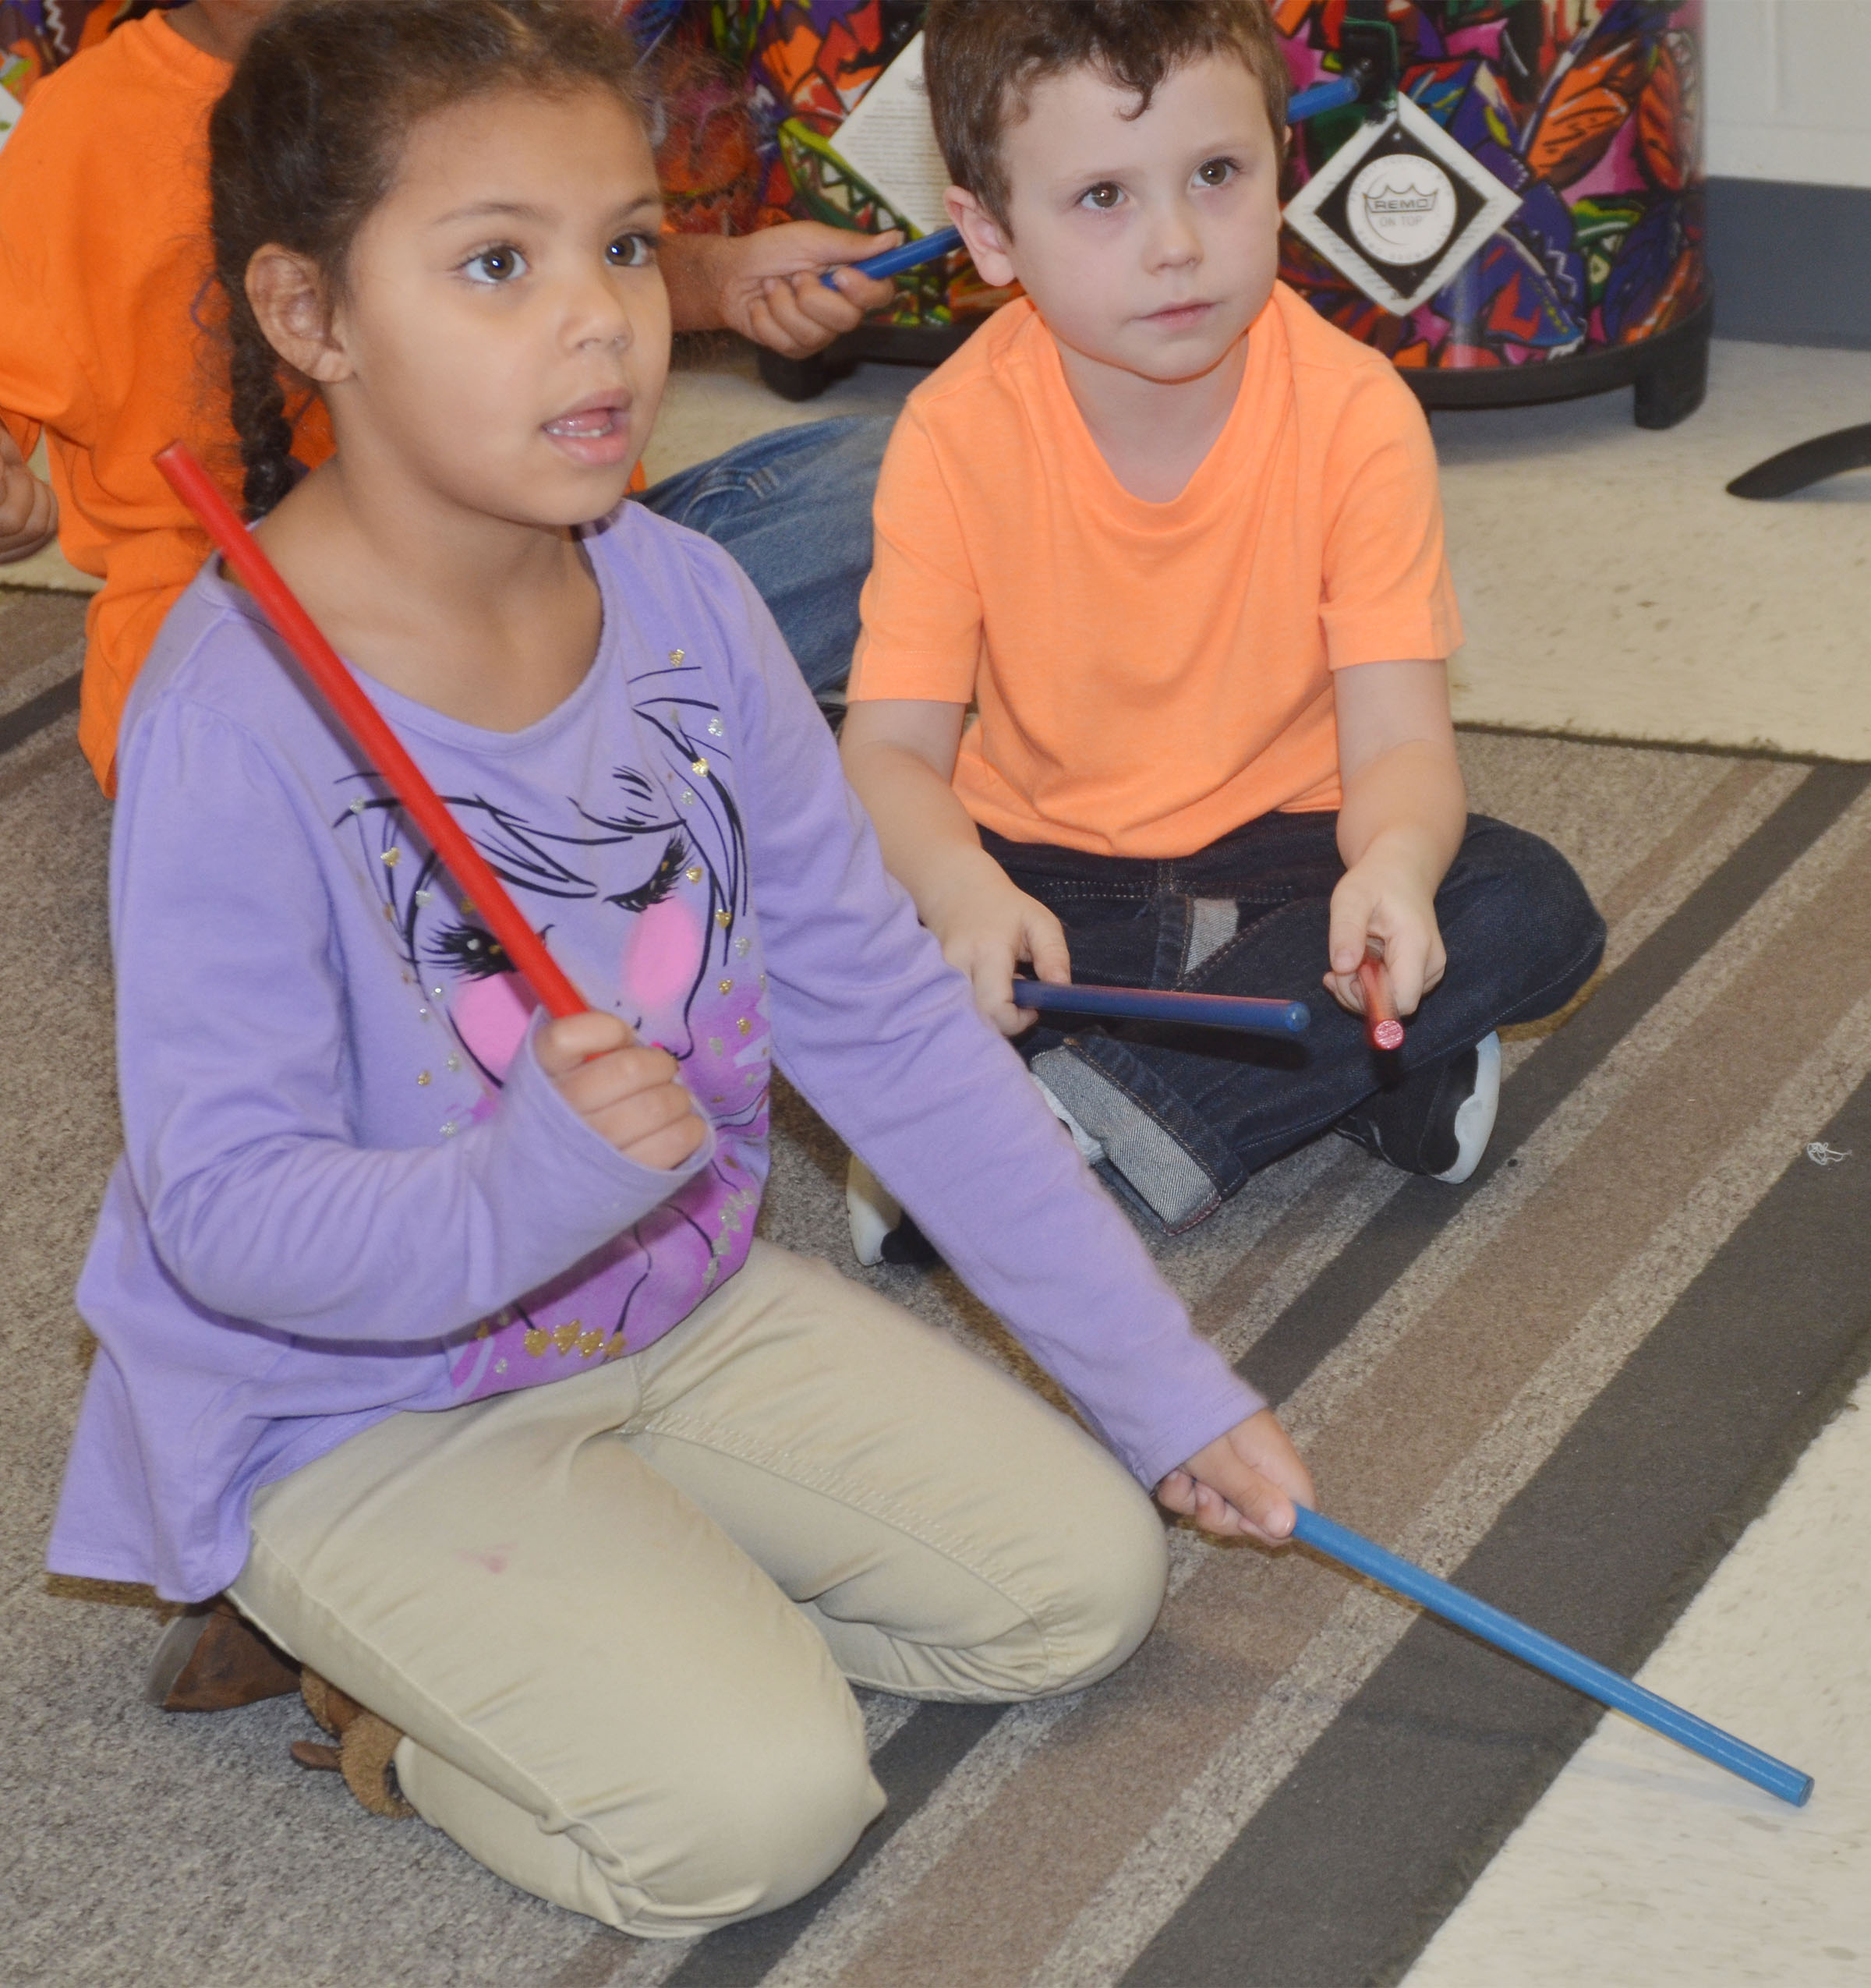 CES kindergarteners Jasymon Musselwhite, at left, and Braydan Dyer play the rhythm sticks.